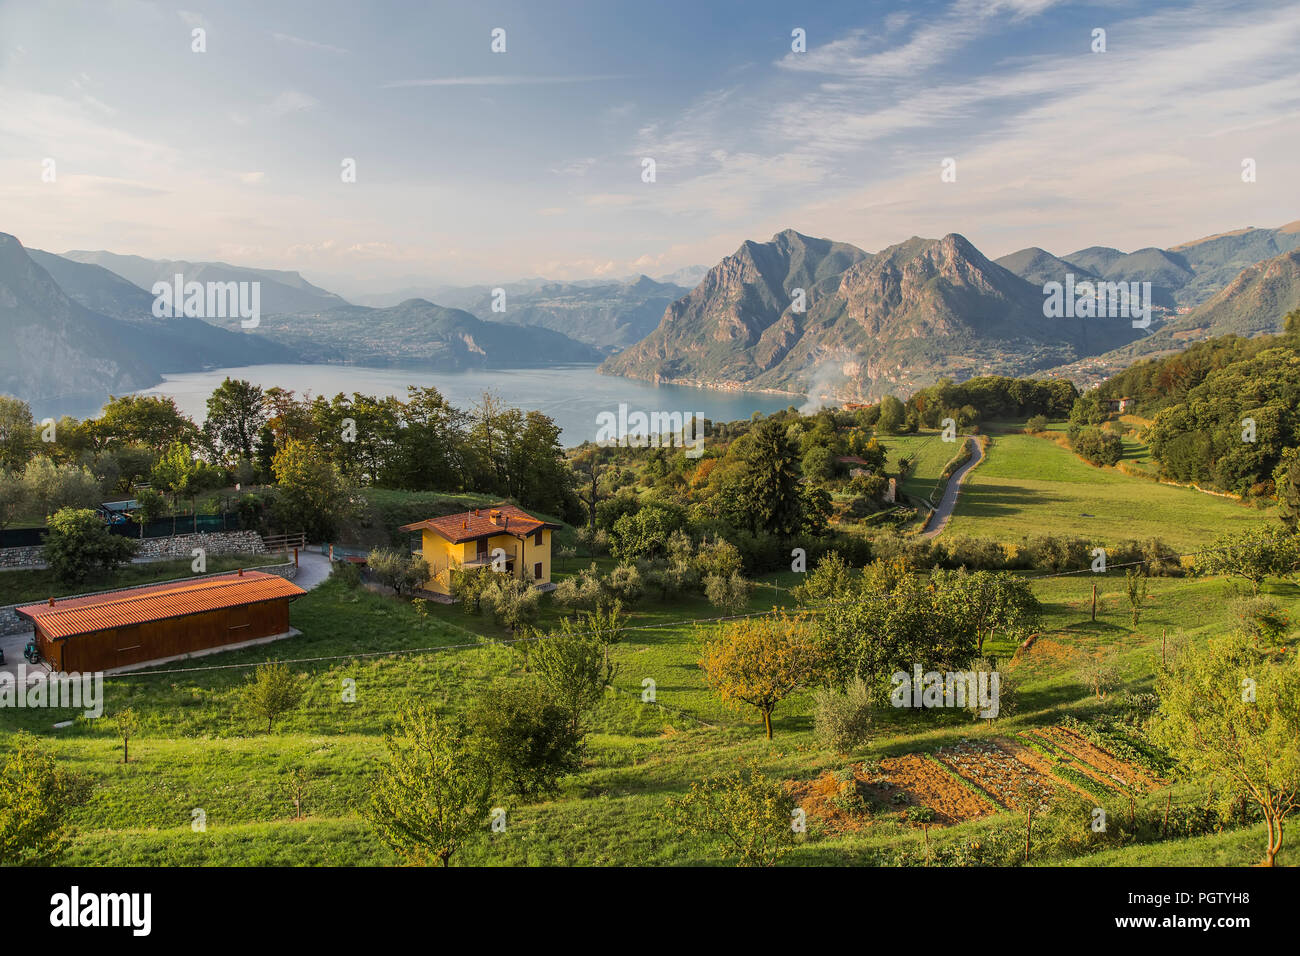 Rural house with fruit trees, vineyards and fields on the island in the middle of Lake Iseo and the mountains on the horizon. Italy - Stock Image